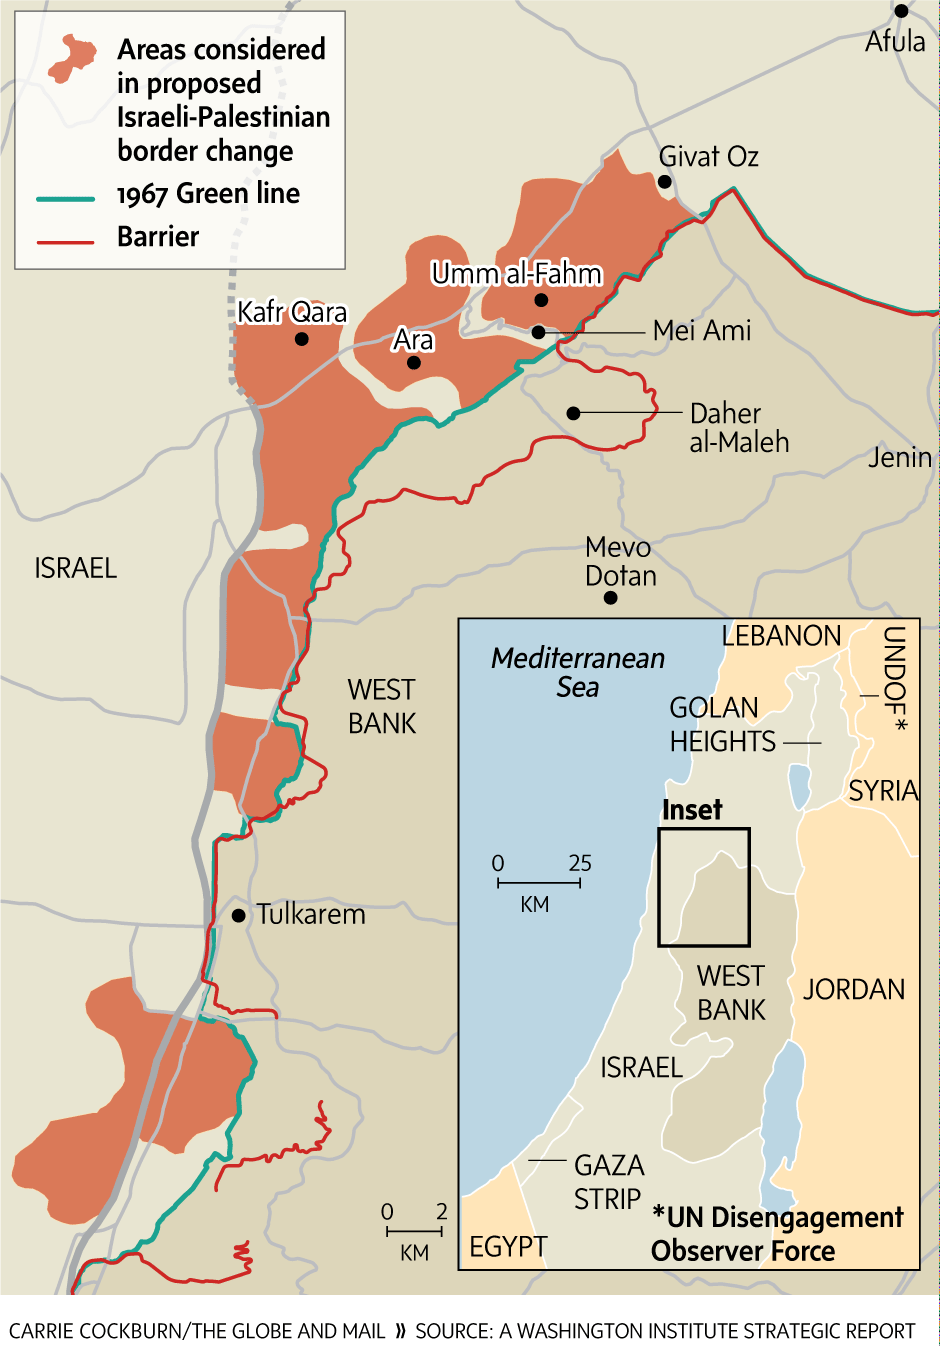 Wadi Ara could be a sticking point in future IsraeliPalestinian